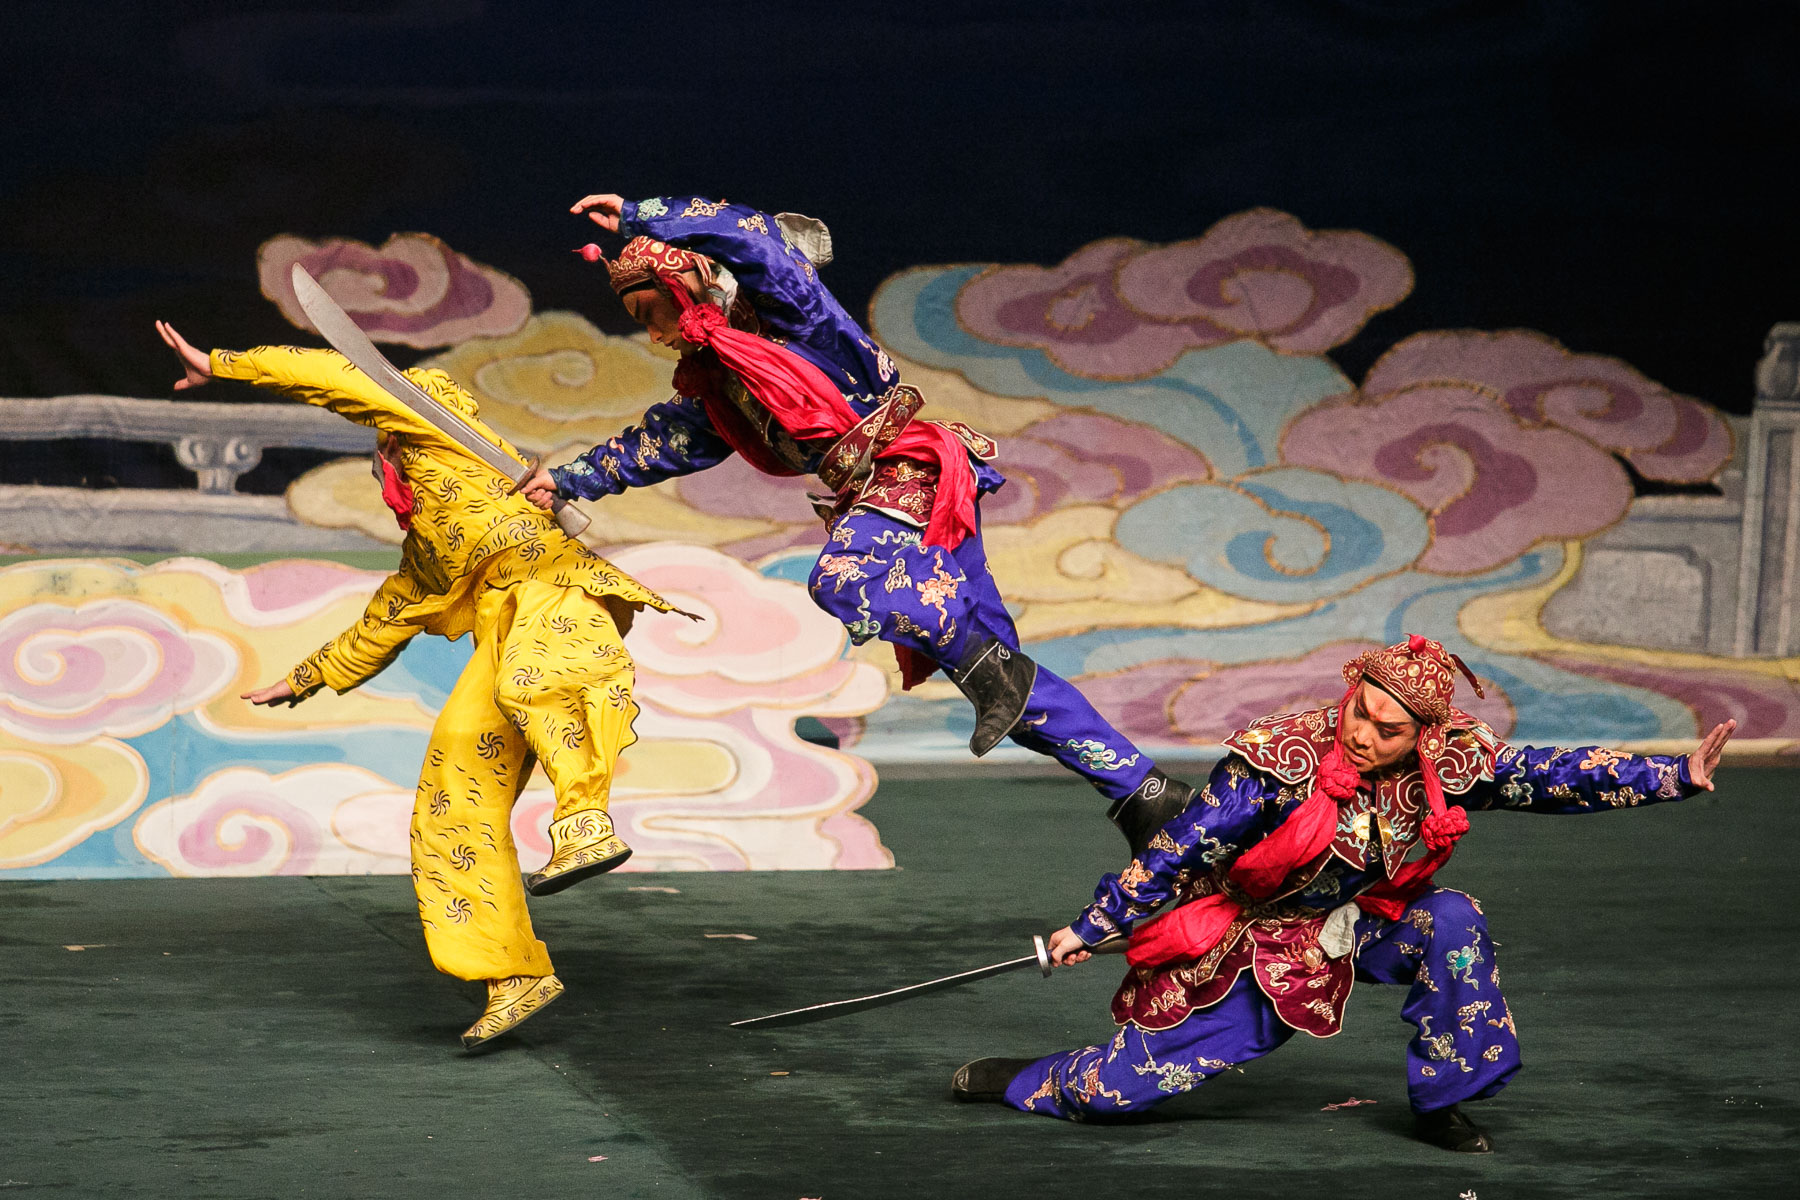 China National Peking Opera Company performs the Monkey King in Cankarjev dom Culture and Congress Center in Ljubljana, Slovenia, Dec. 31, 2015.